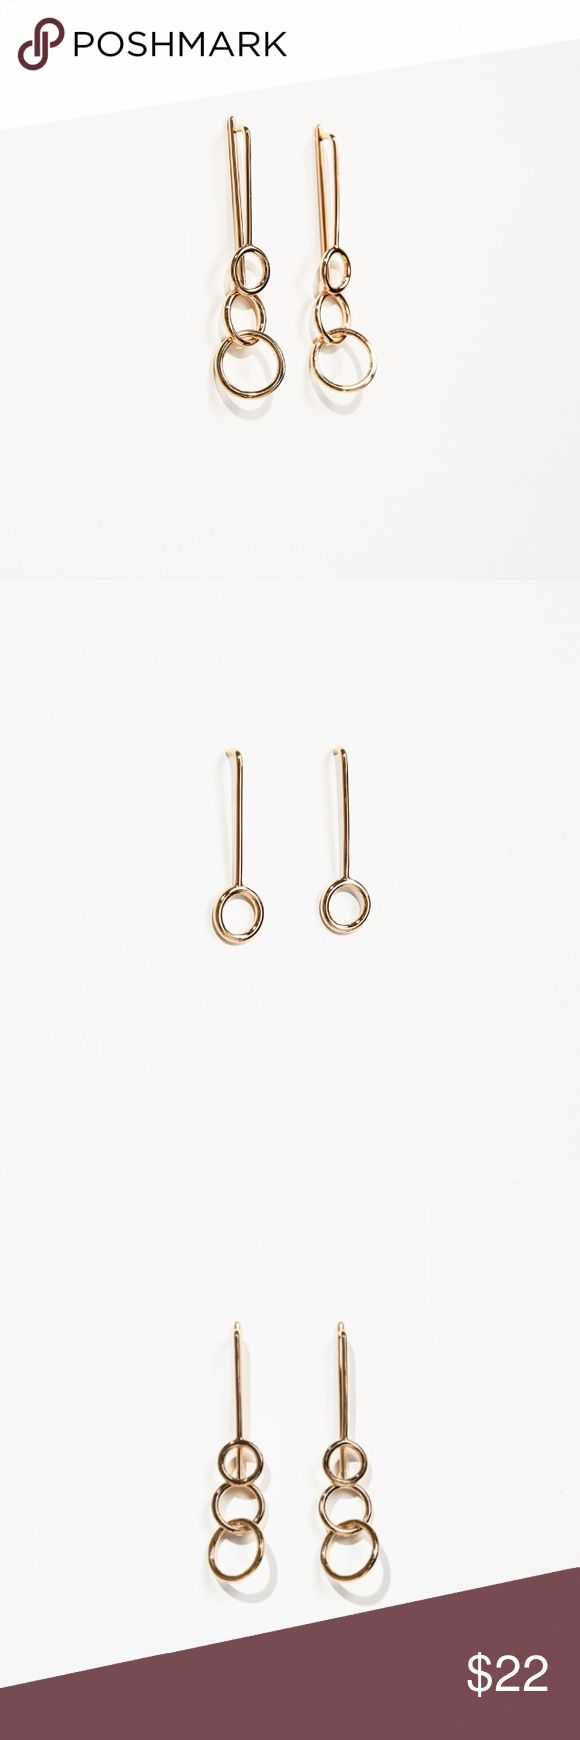 Studio Double Ring Earrings - ZARA Super chic. SOLD OUT in stores and online. Open to reasonable offers. Zara Accessories